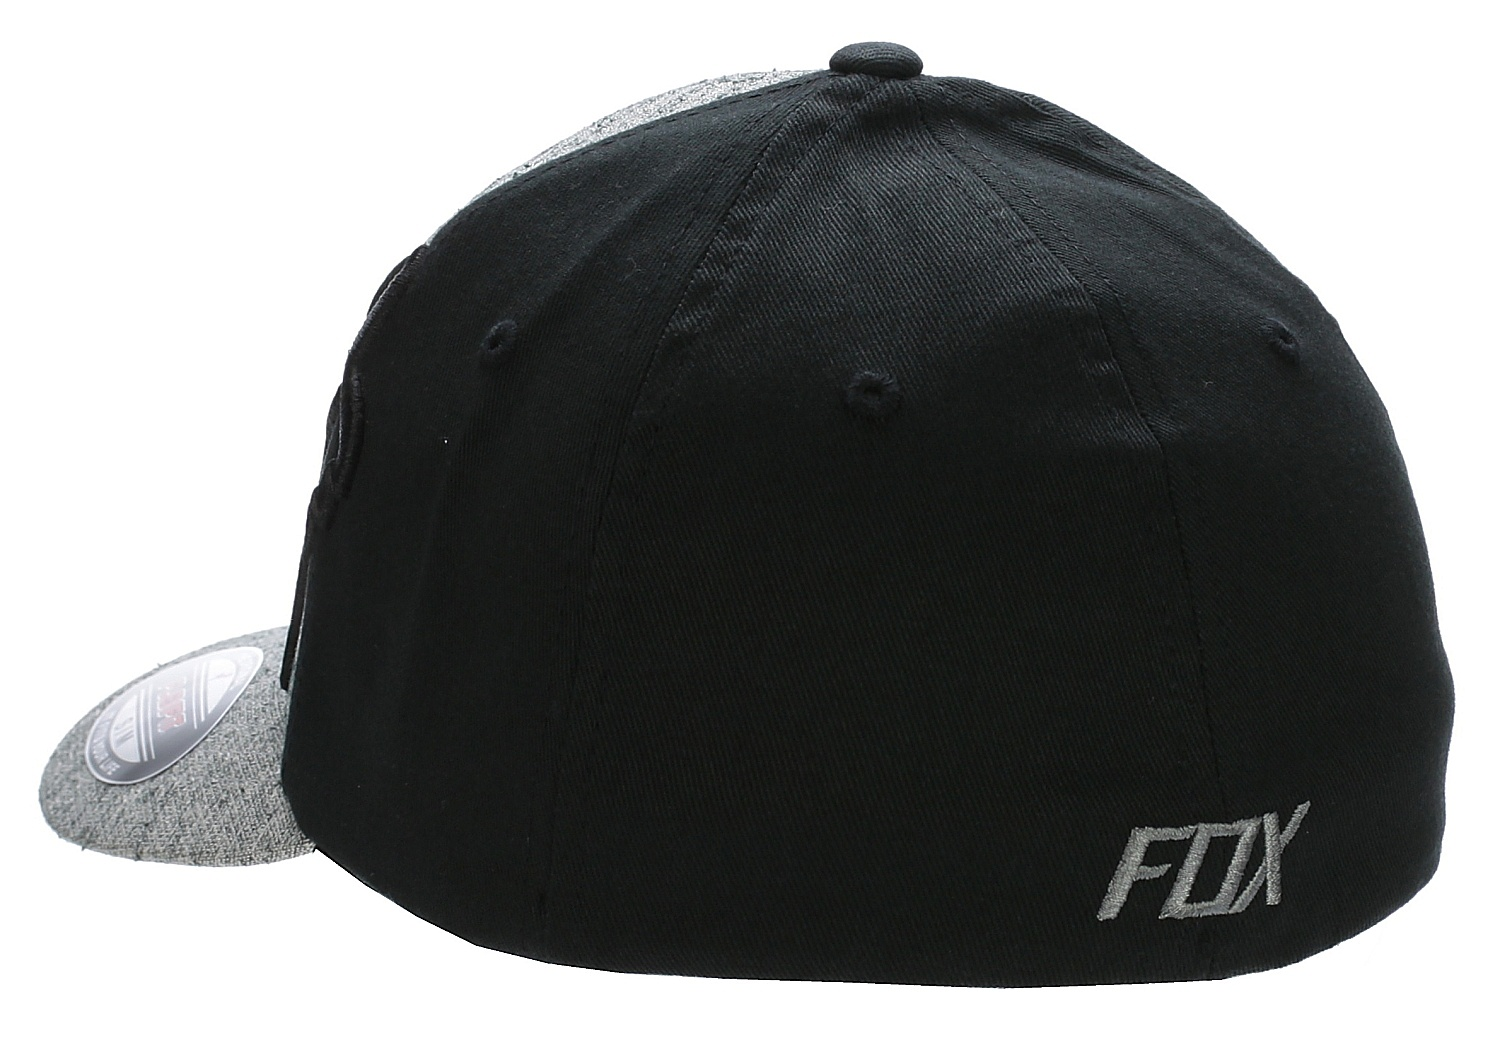 kšiltovka Fox Yawp Flexfit - Black kšiltovka Fox Yawp Flexfit - Black ... ca3c2db79a